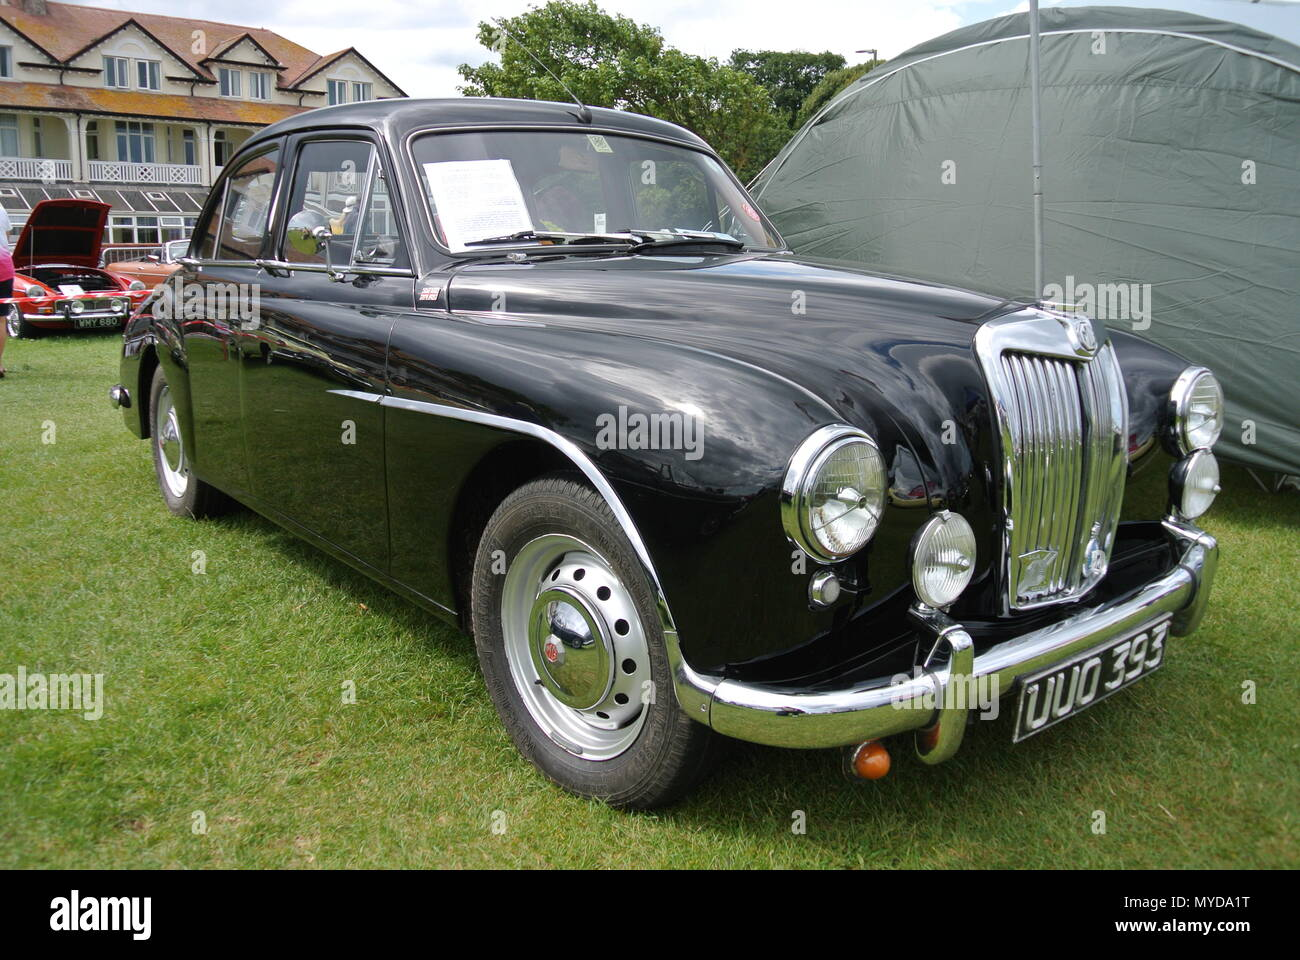 a 1956 MG ZA Magnette classic car parked on display at the English Riviera classic car show, Paignton, Devon, England, UK - Stock Image